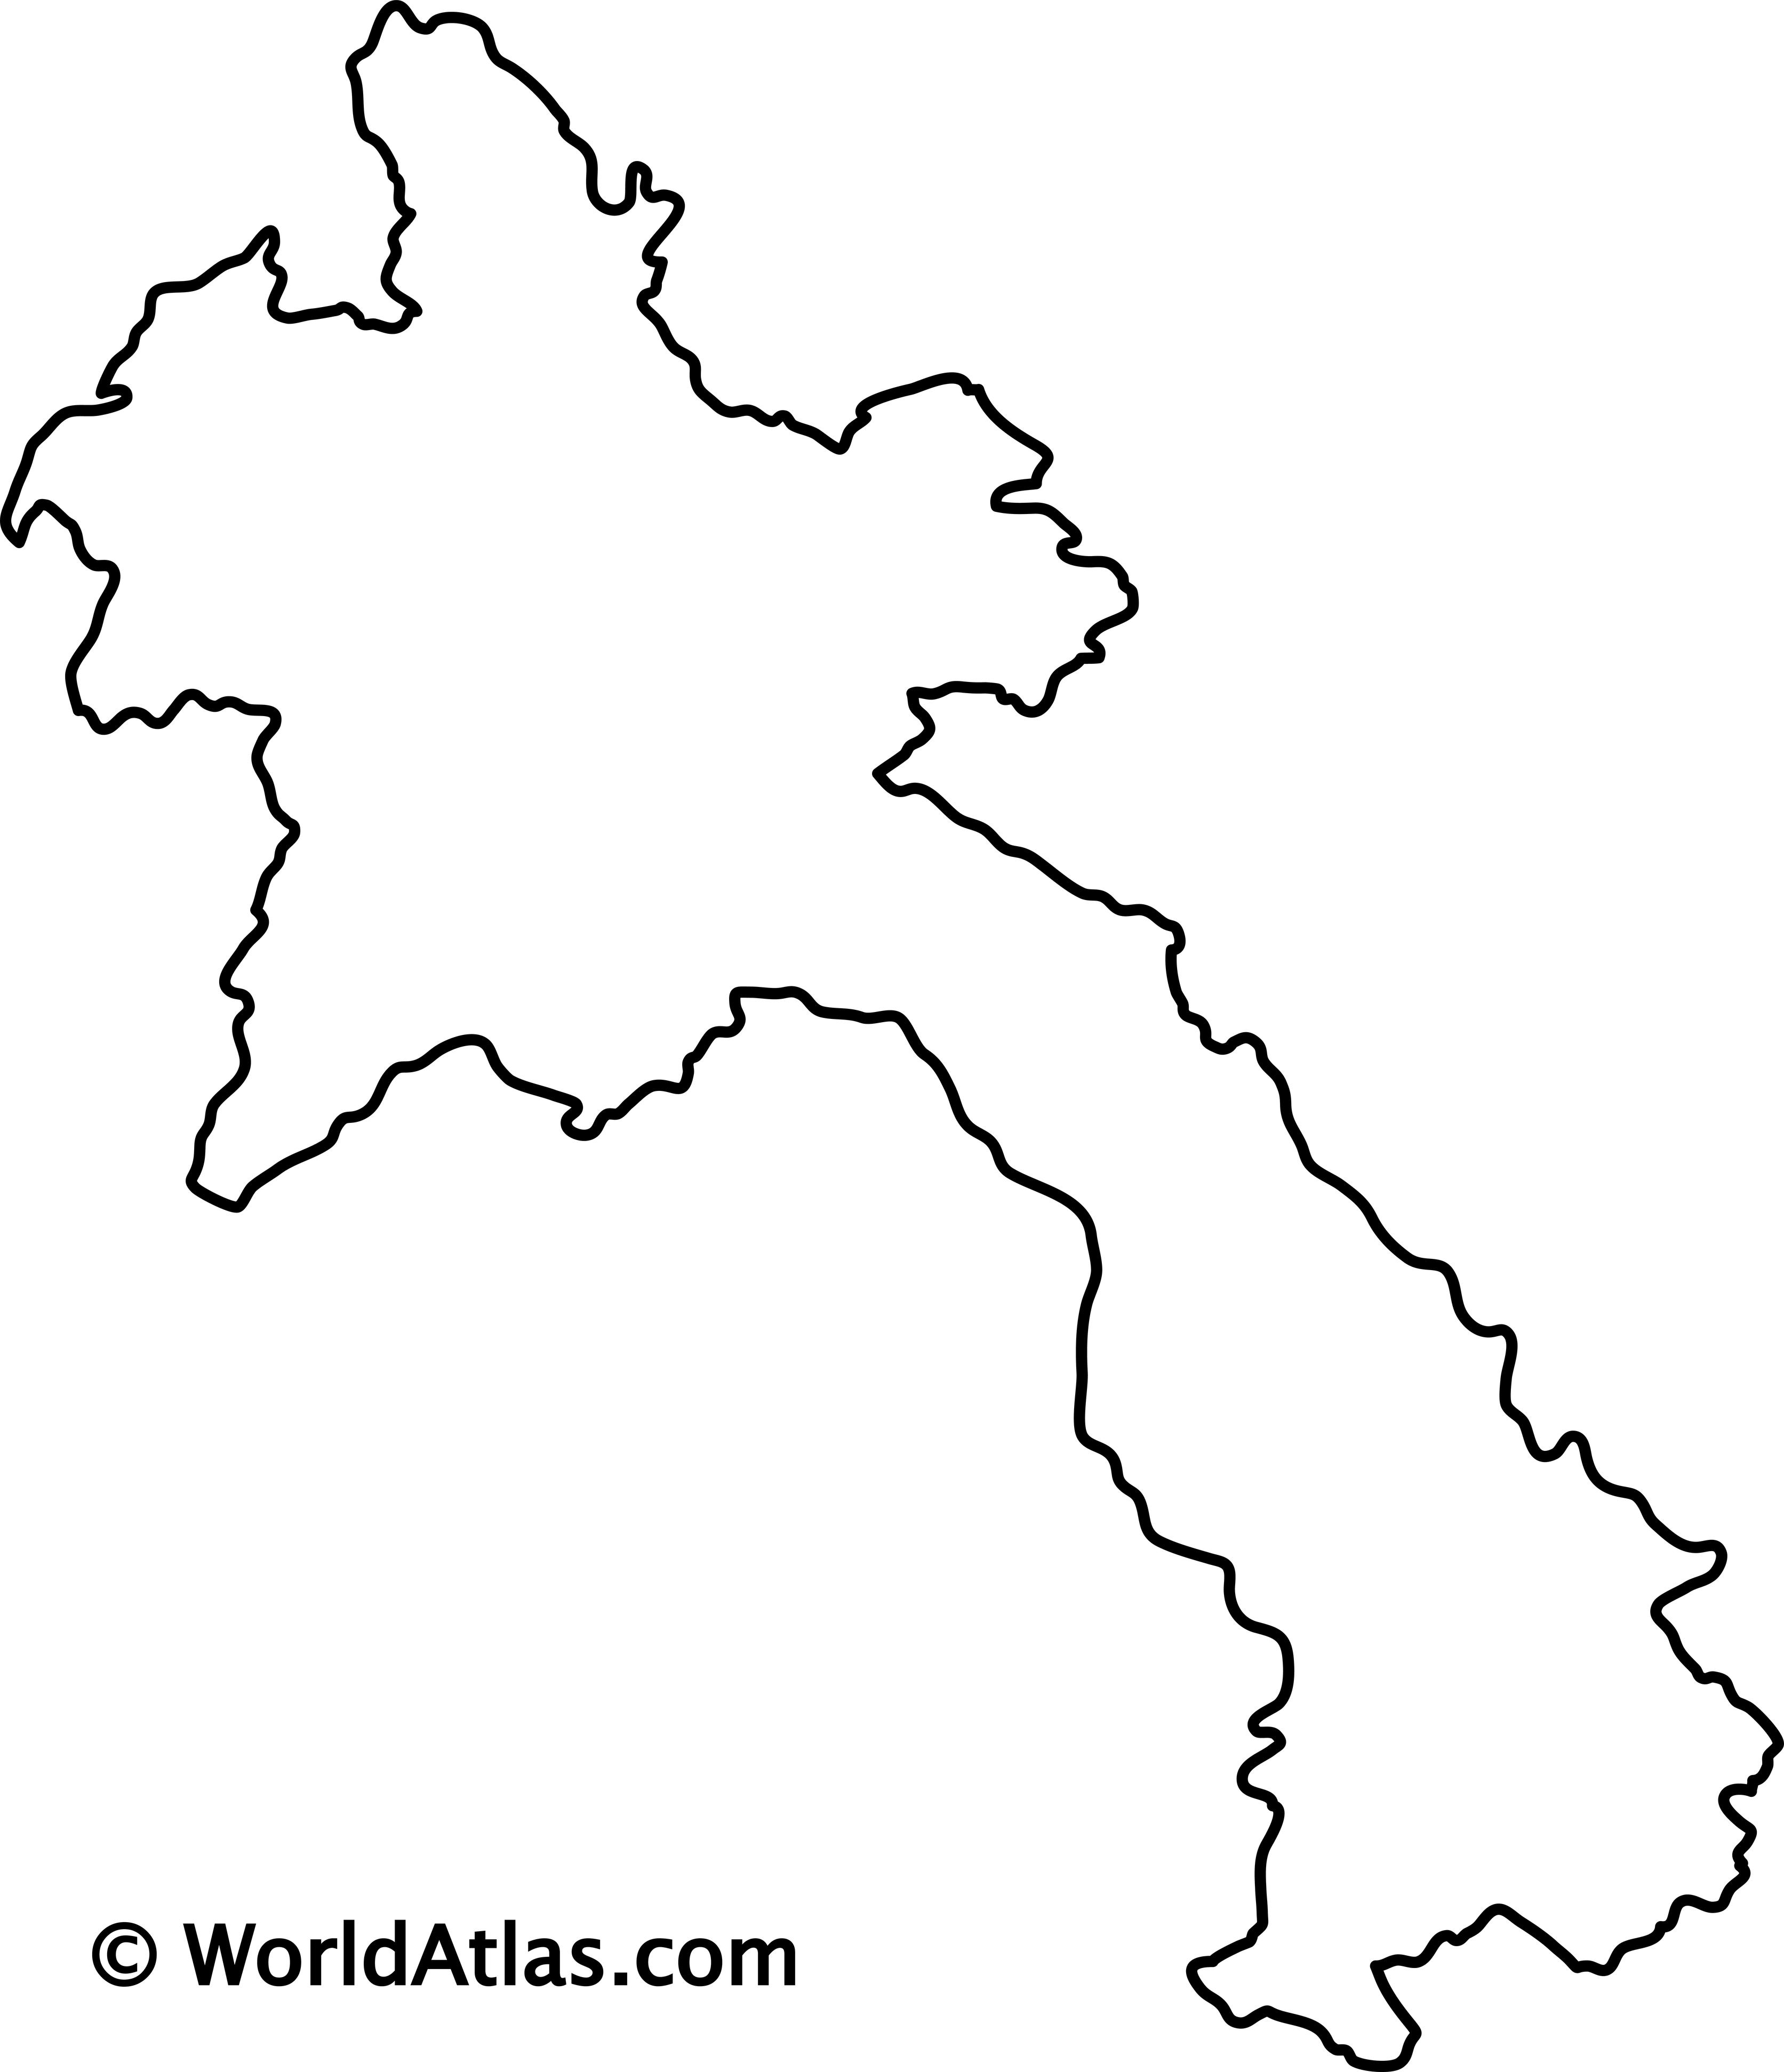 Blank Outline Map of Laos